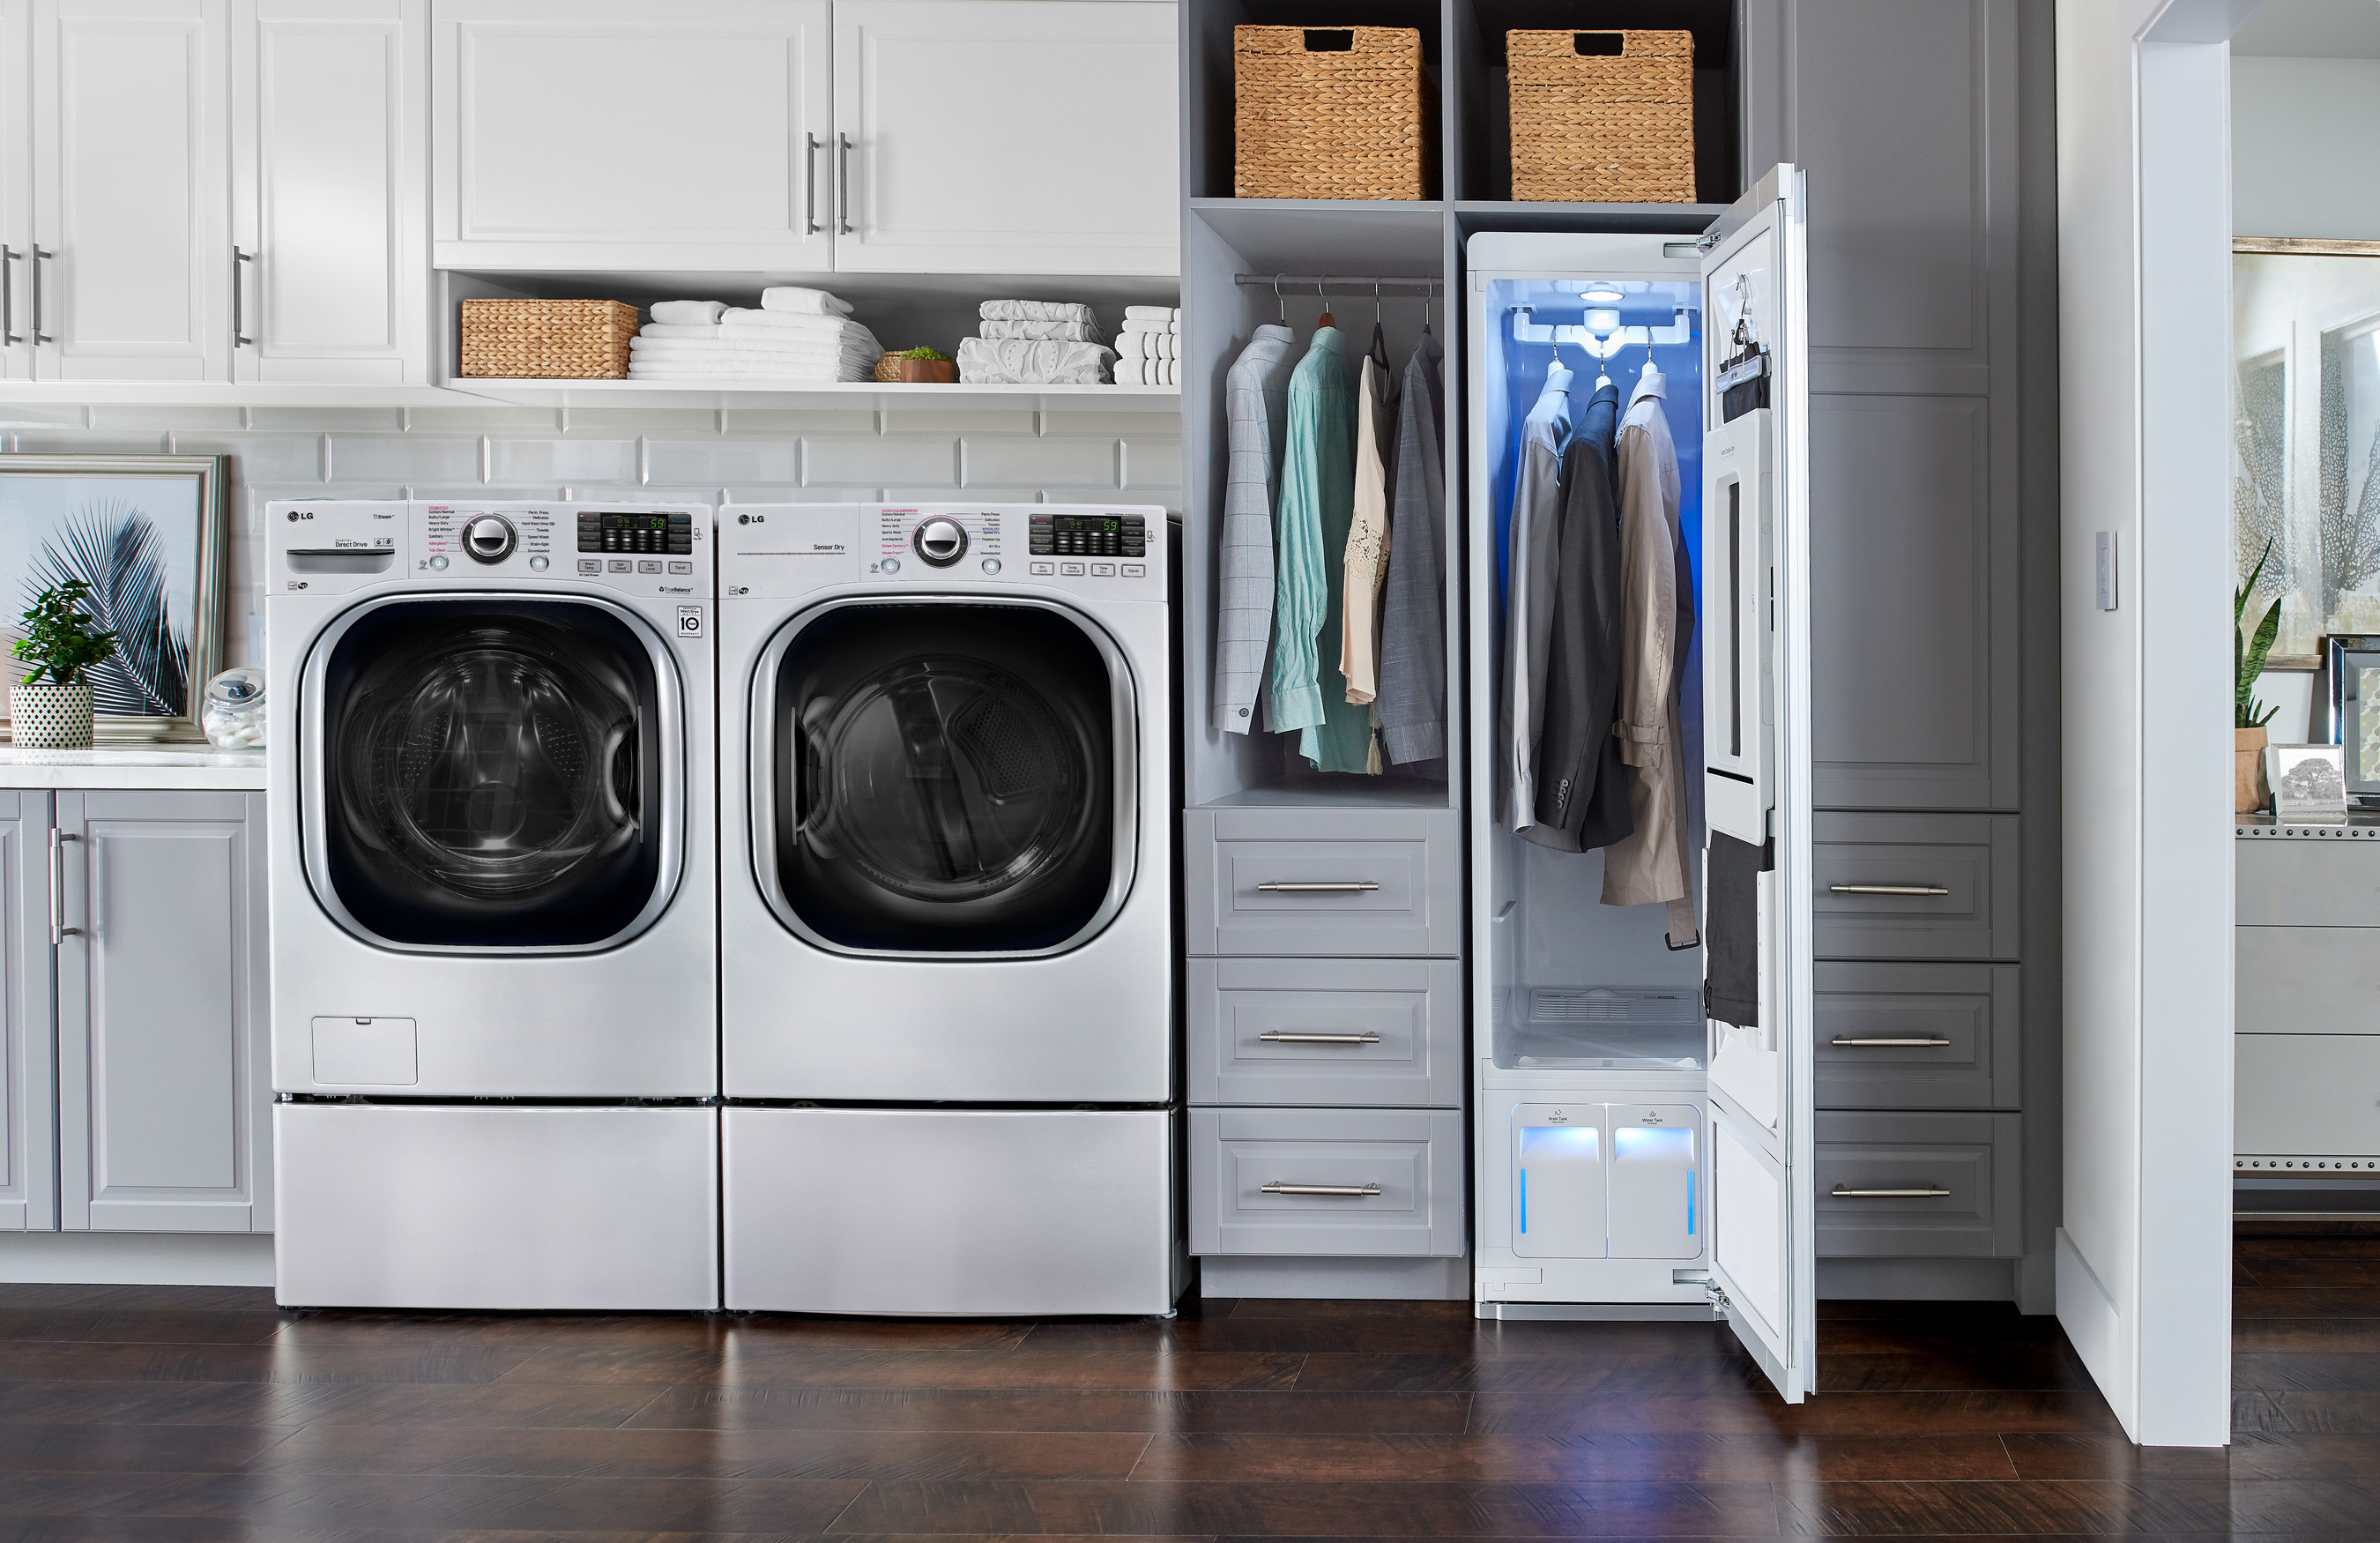 The premium LG Styler clothing care system brings functionality and elegance to the home with a refined, modern design and the ability to keep clothes looking their very best.